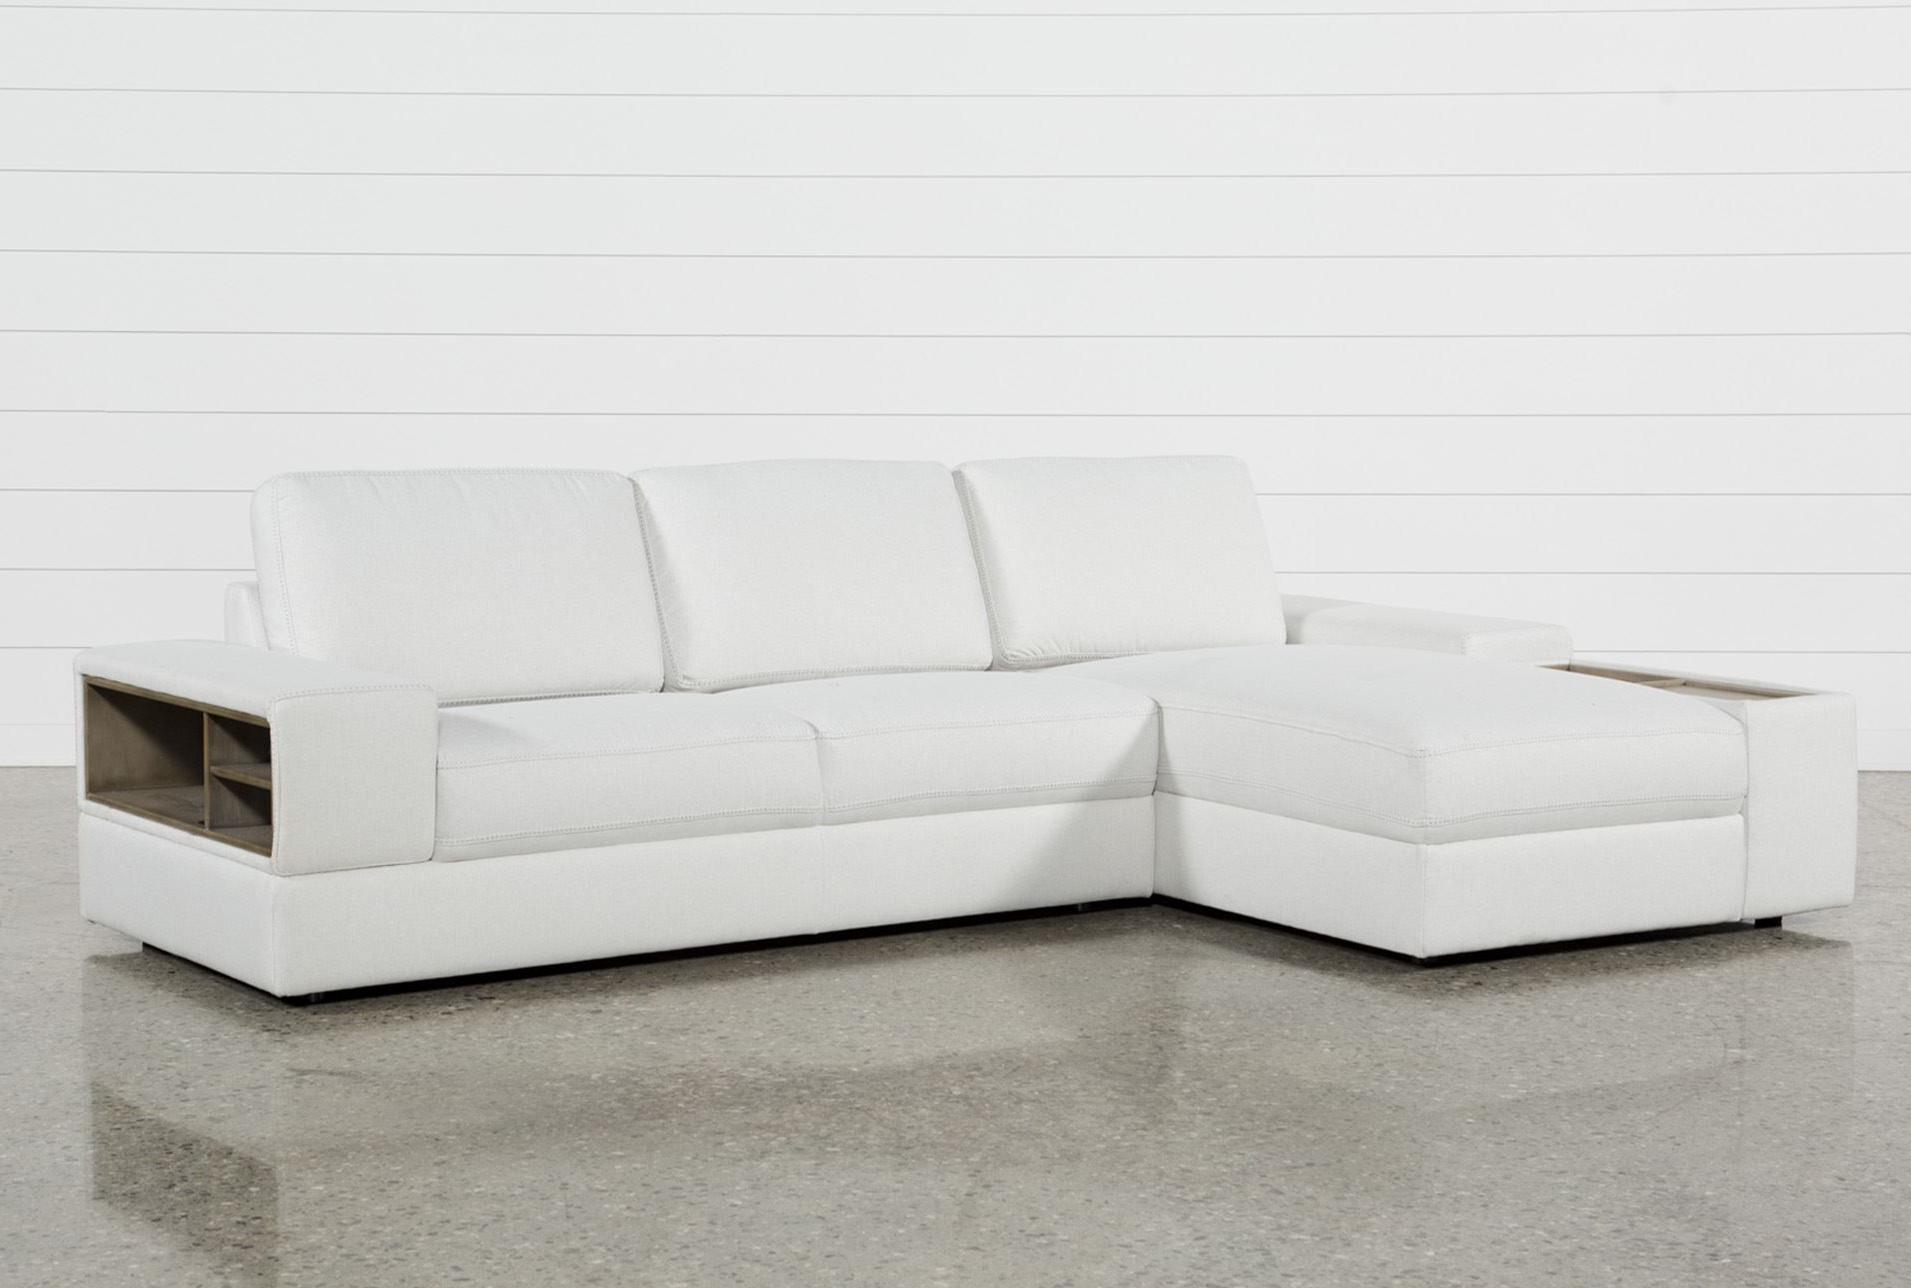 Stone Throughout Most Current Arrowmask 2 Piece Sectionals With Laf Chaise (View 18 of 20)